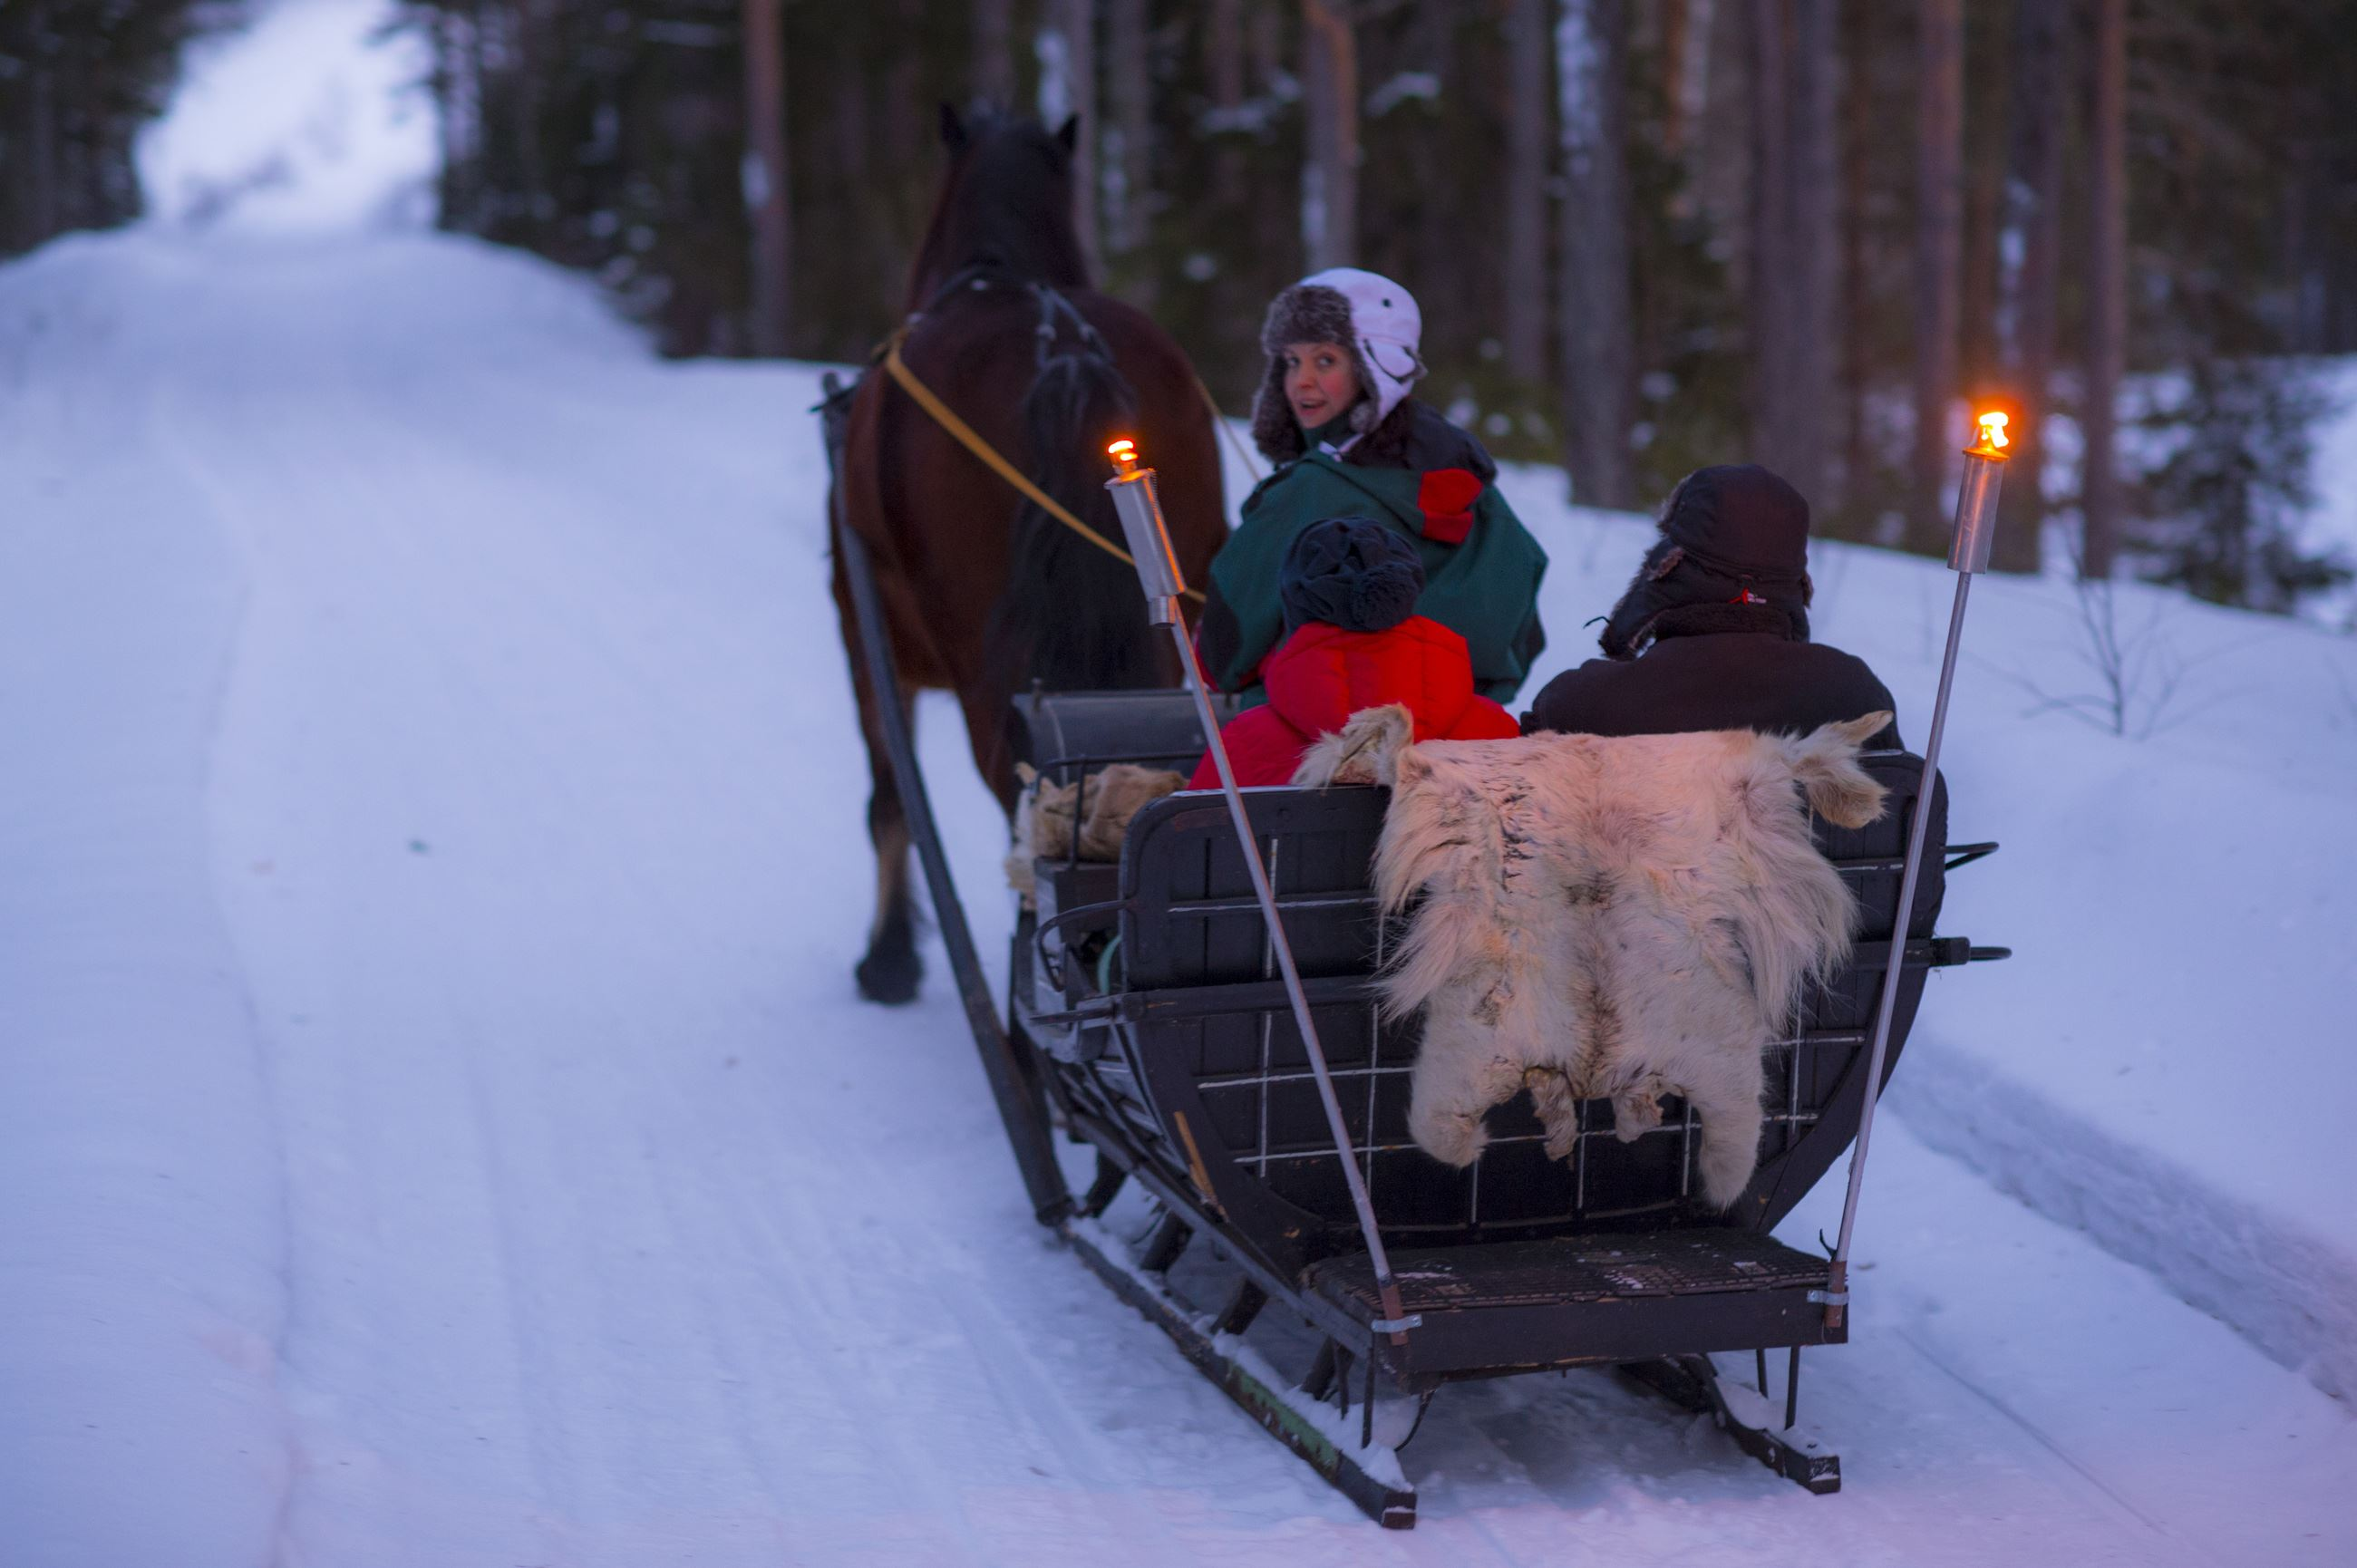 Horse and sleigh through a wintry wilderness